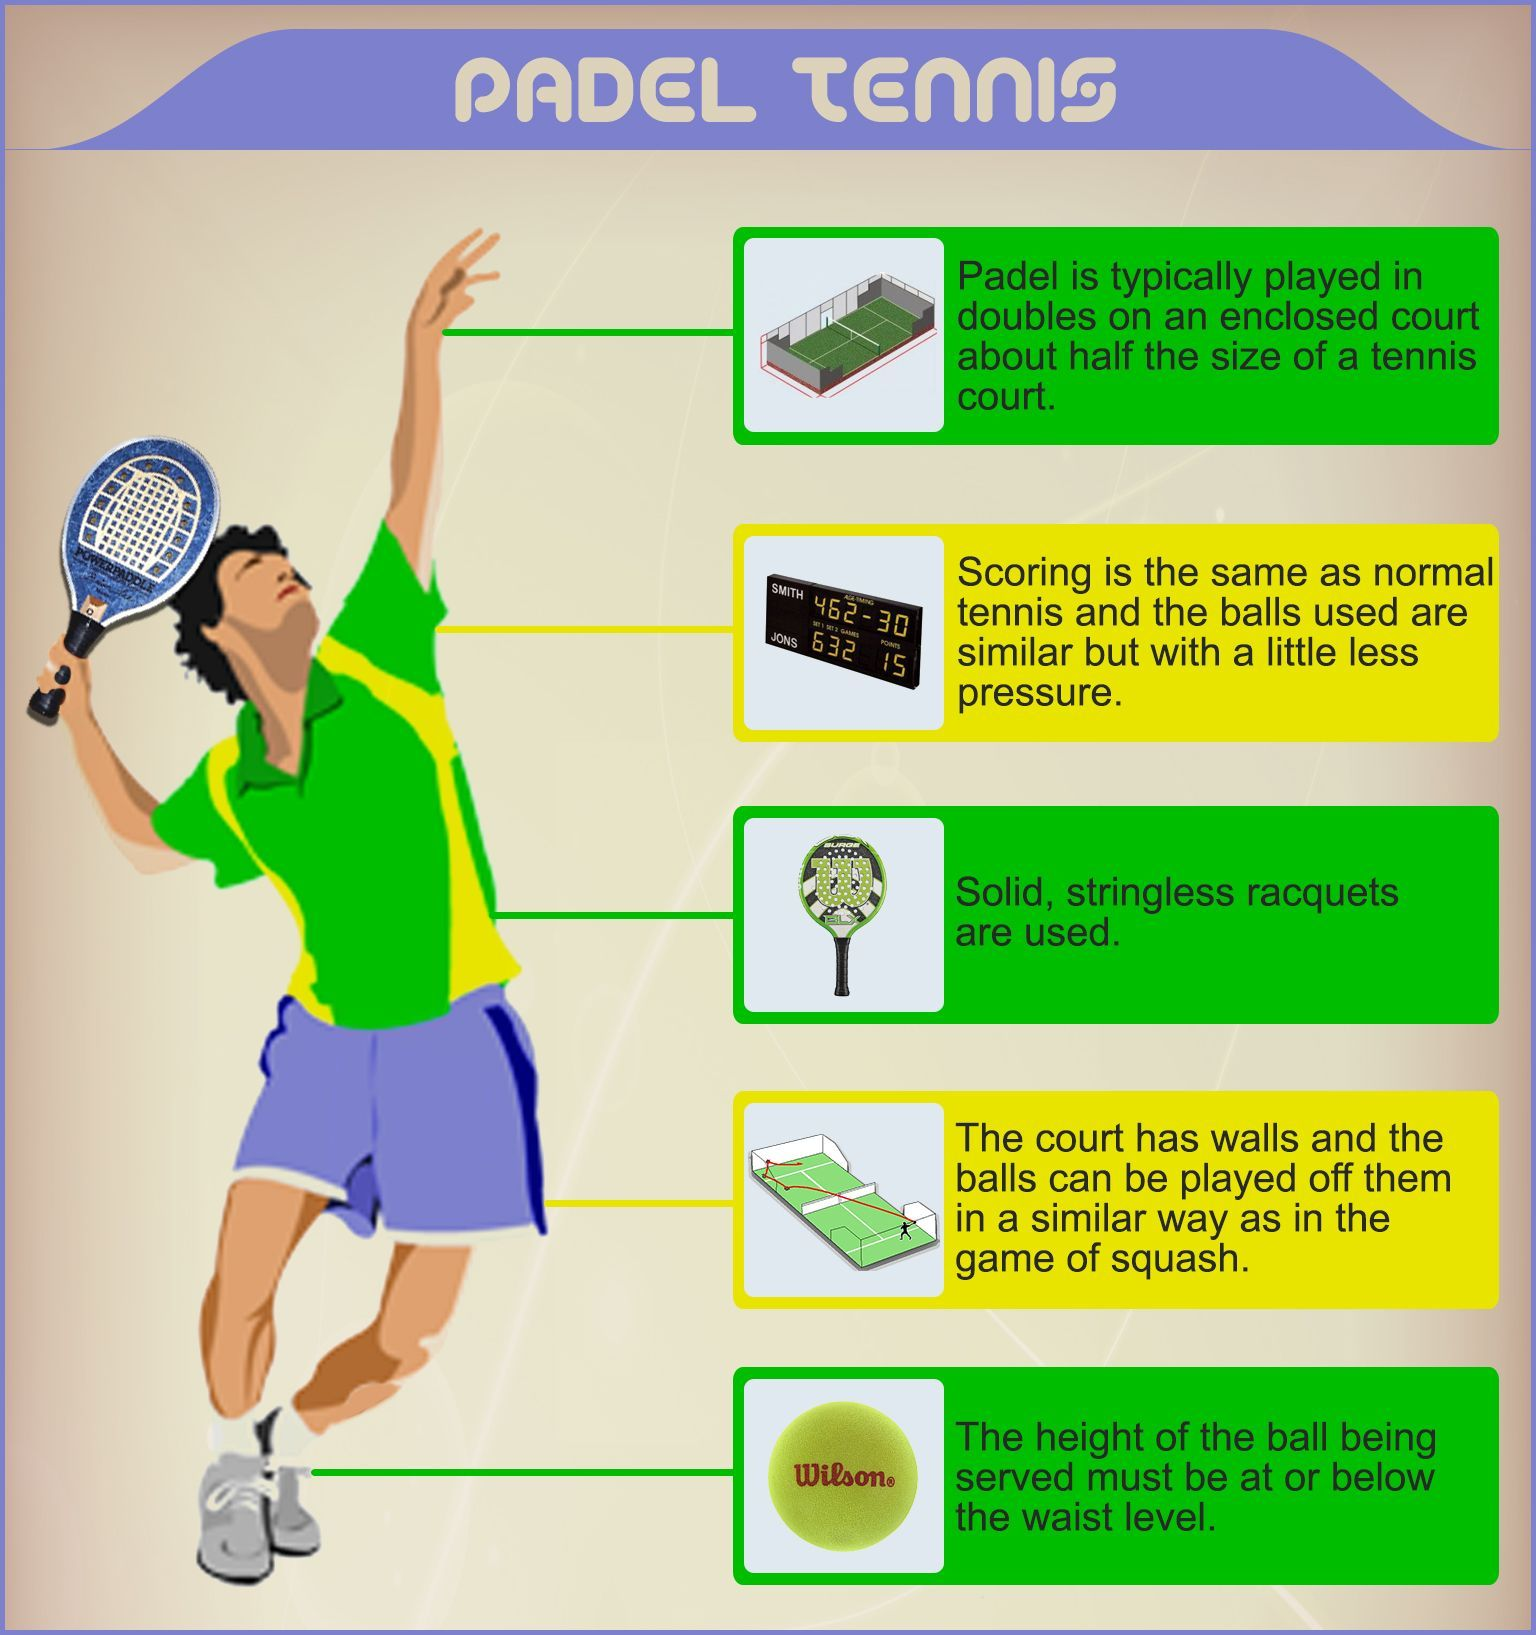 David Rycott Padel Tennis An Introduction To The Sport Of Padel Tennis An Explanation Of Some Of The Basics Go To Htt Tennis Tennis Workout Tennis Drills